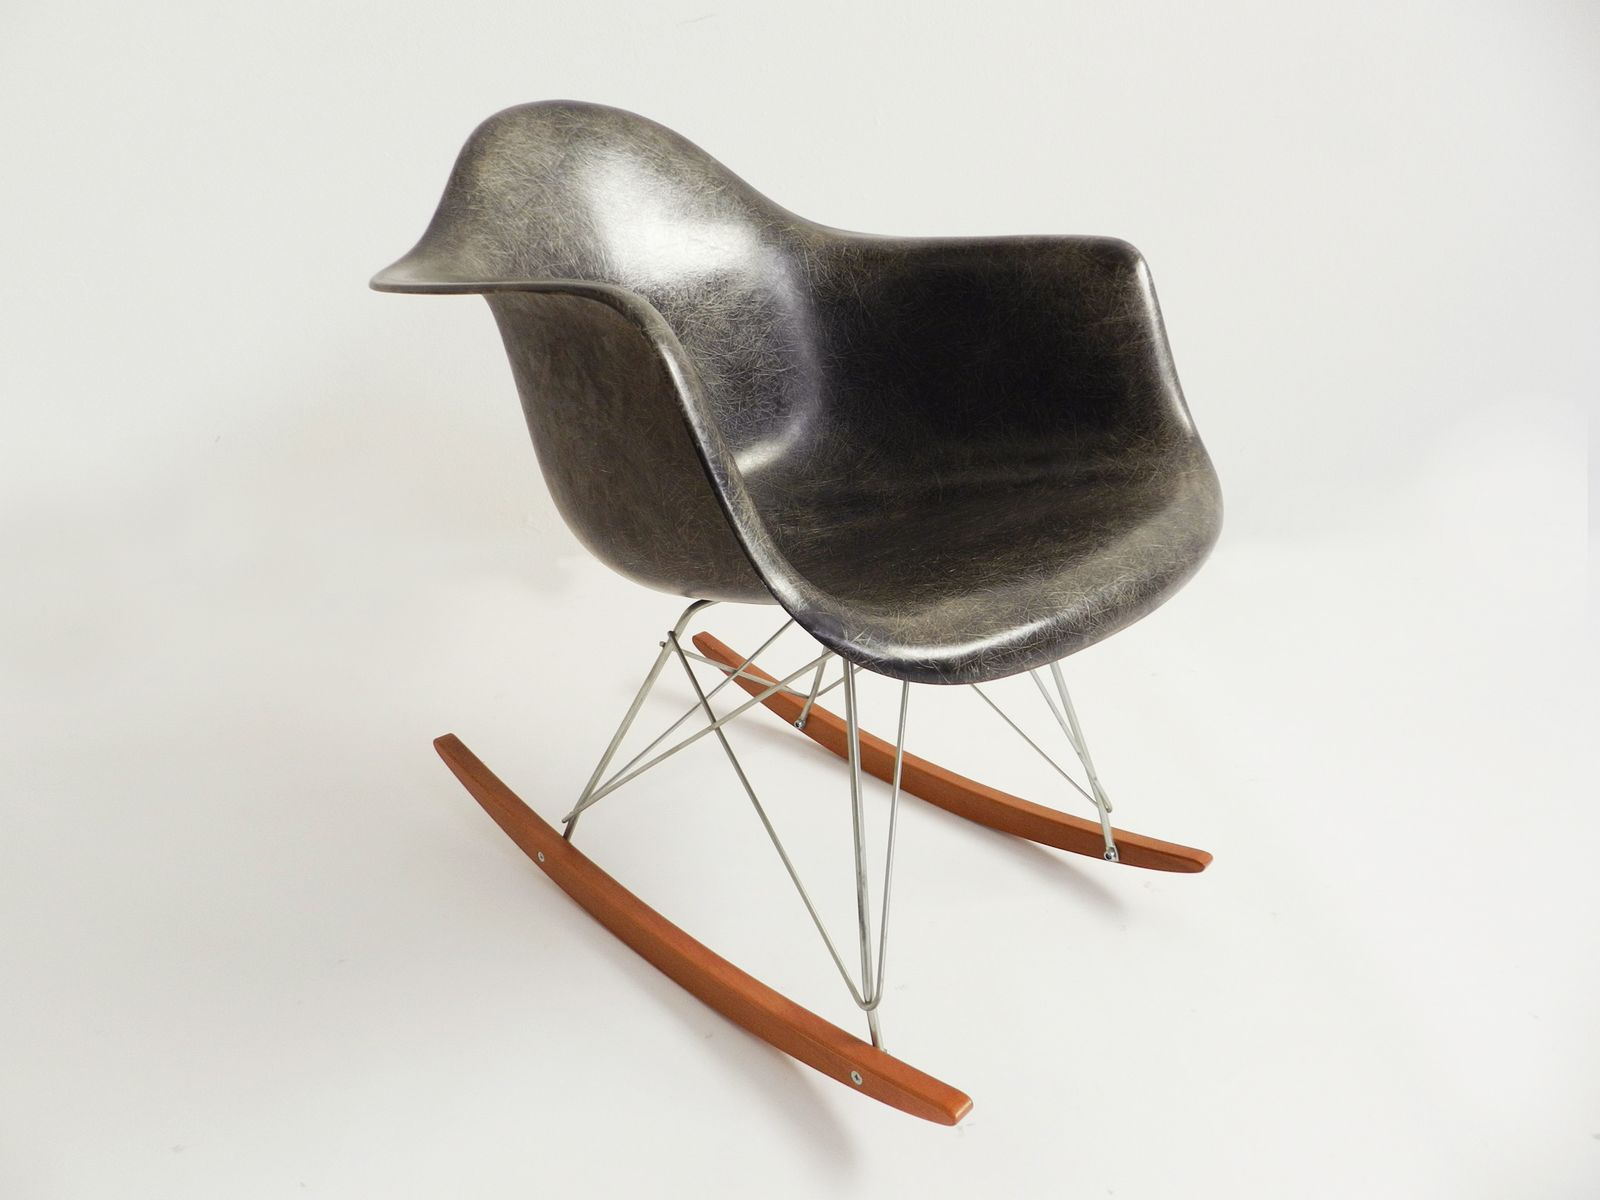 vintage rar rocking chair by charles ray eames for herman miller for